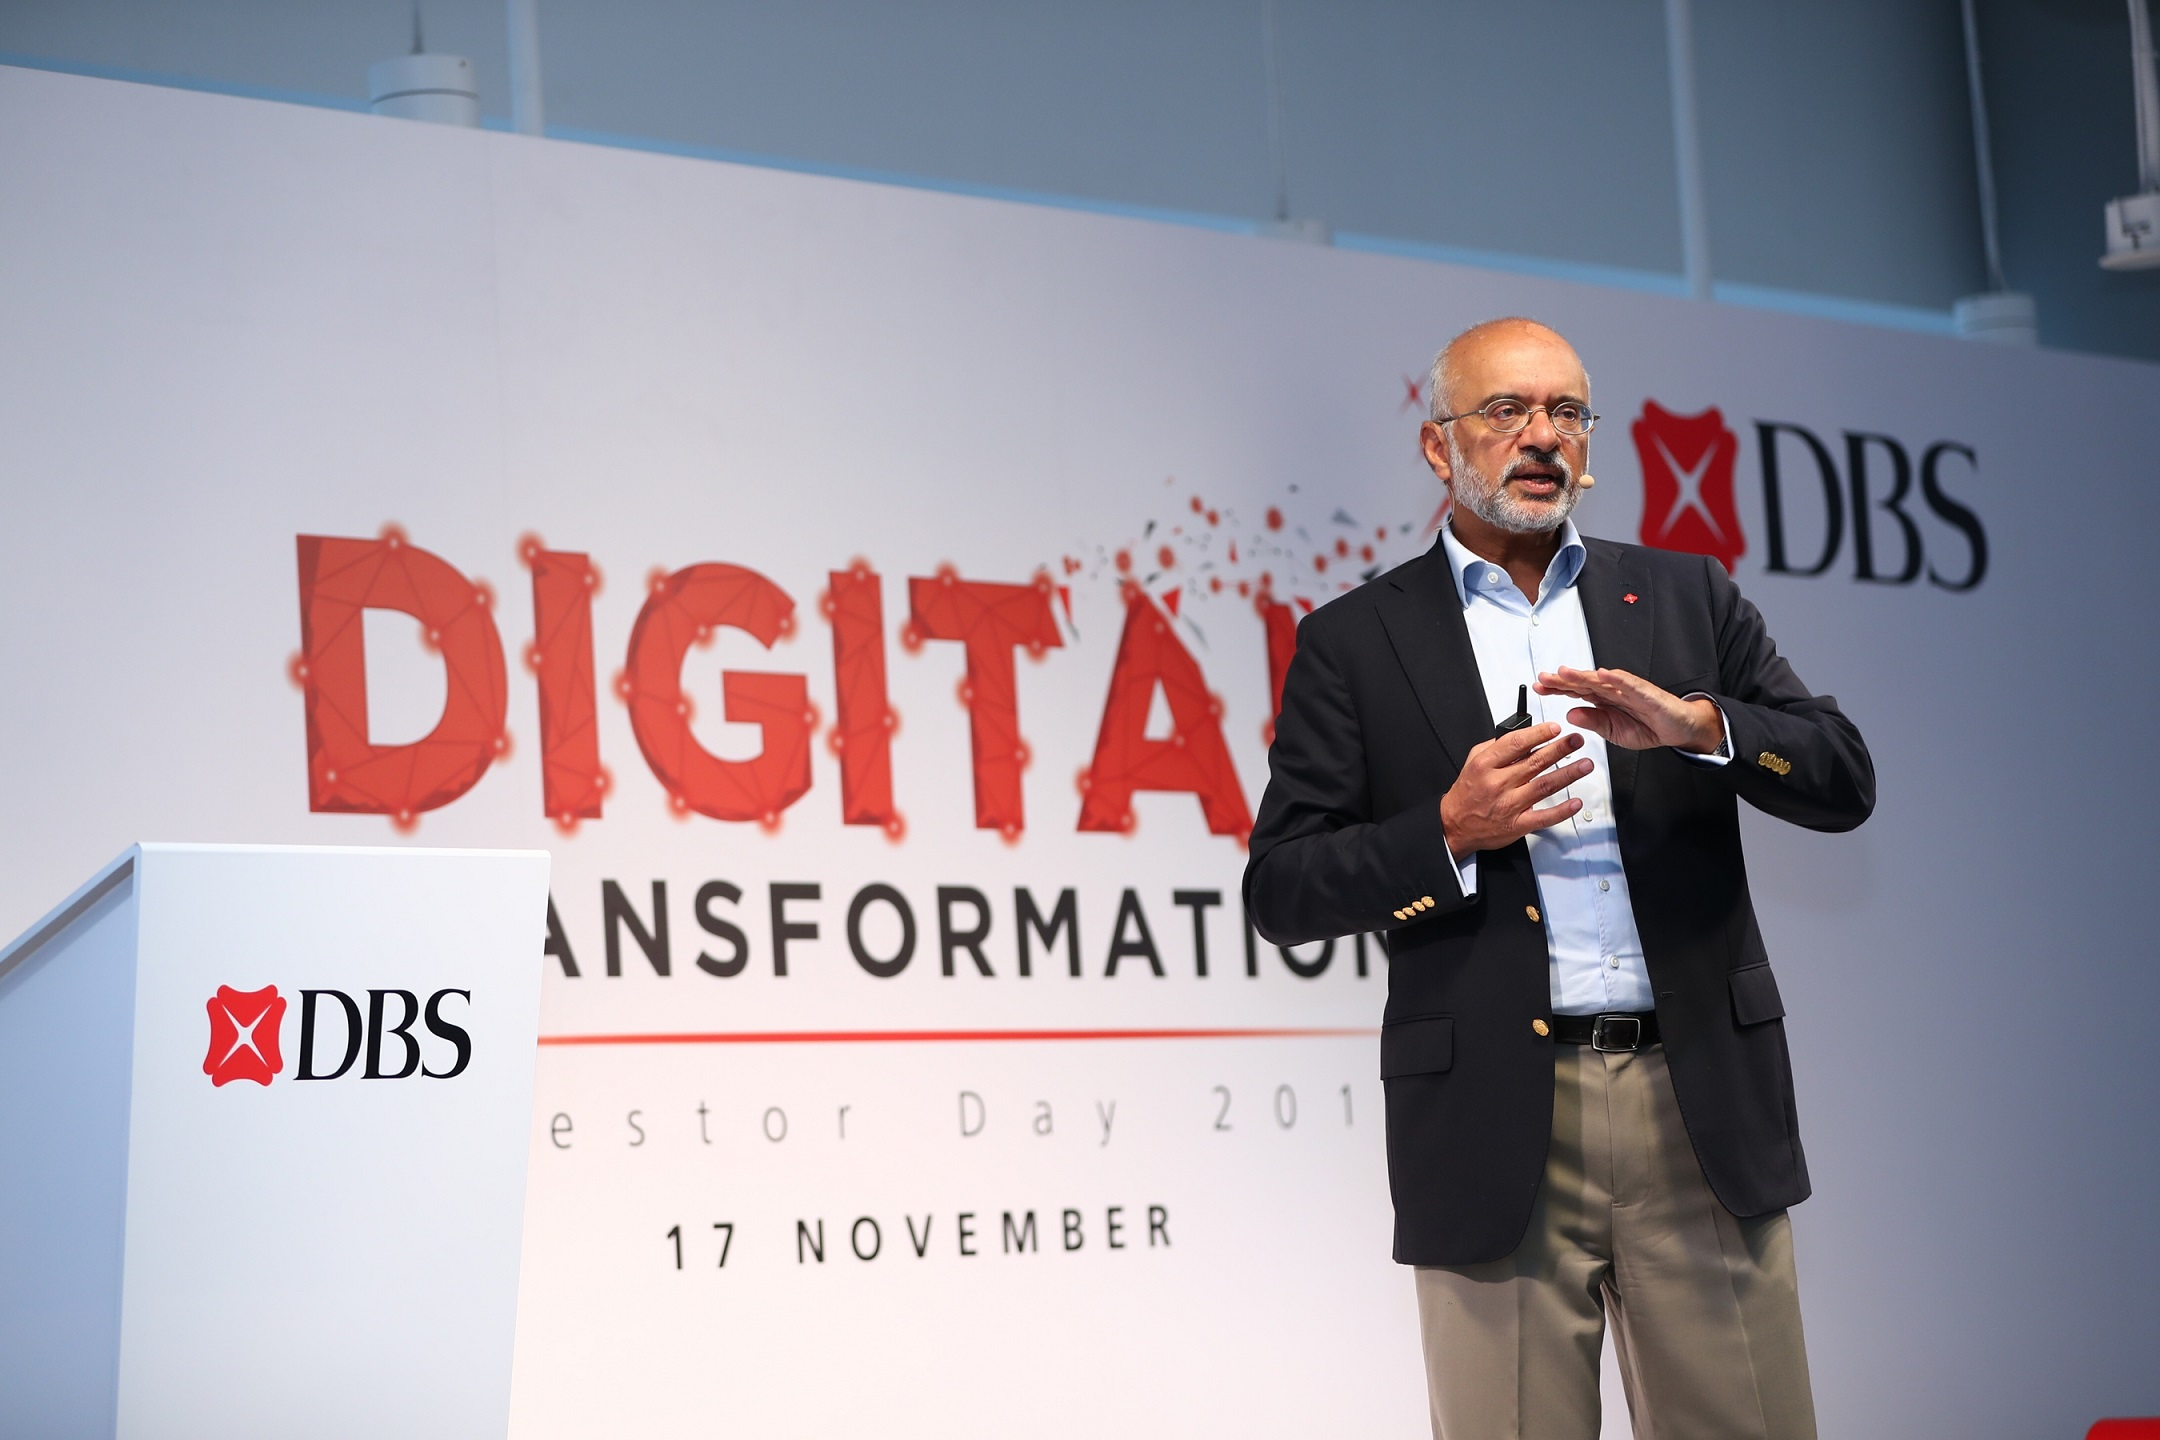 Piyush Gupta, Chief Executive Officer and Director of DBS Group.